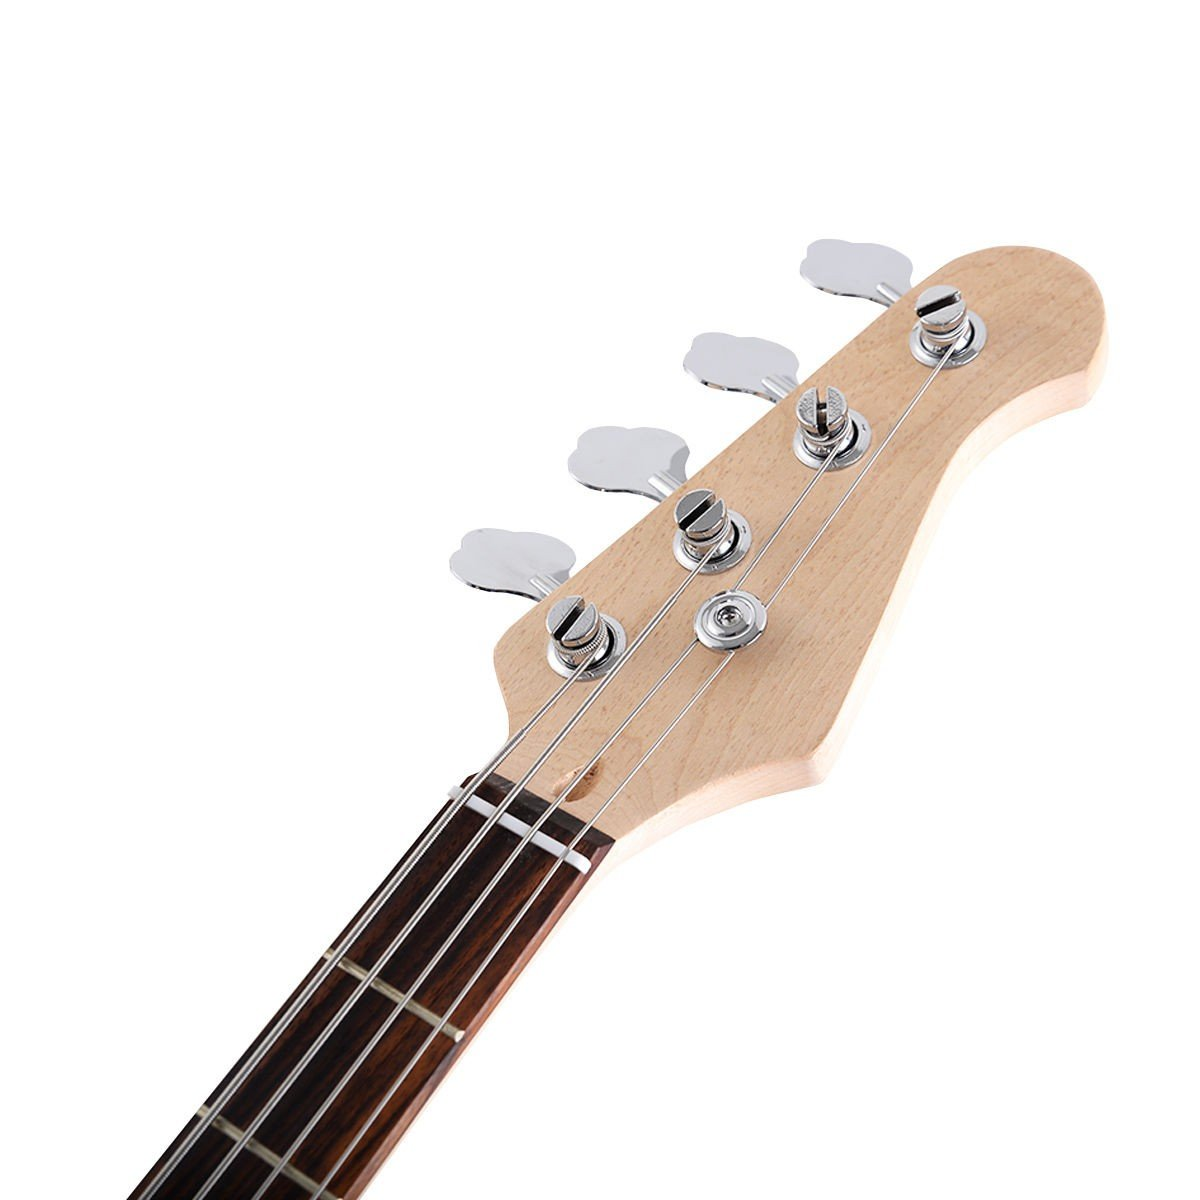 full size 4 string electric bass guitar with strap bag by choice products. Black Bedroom Furniture Sets. Home Design Ideas